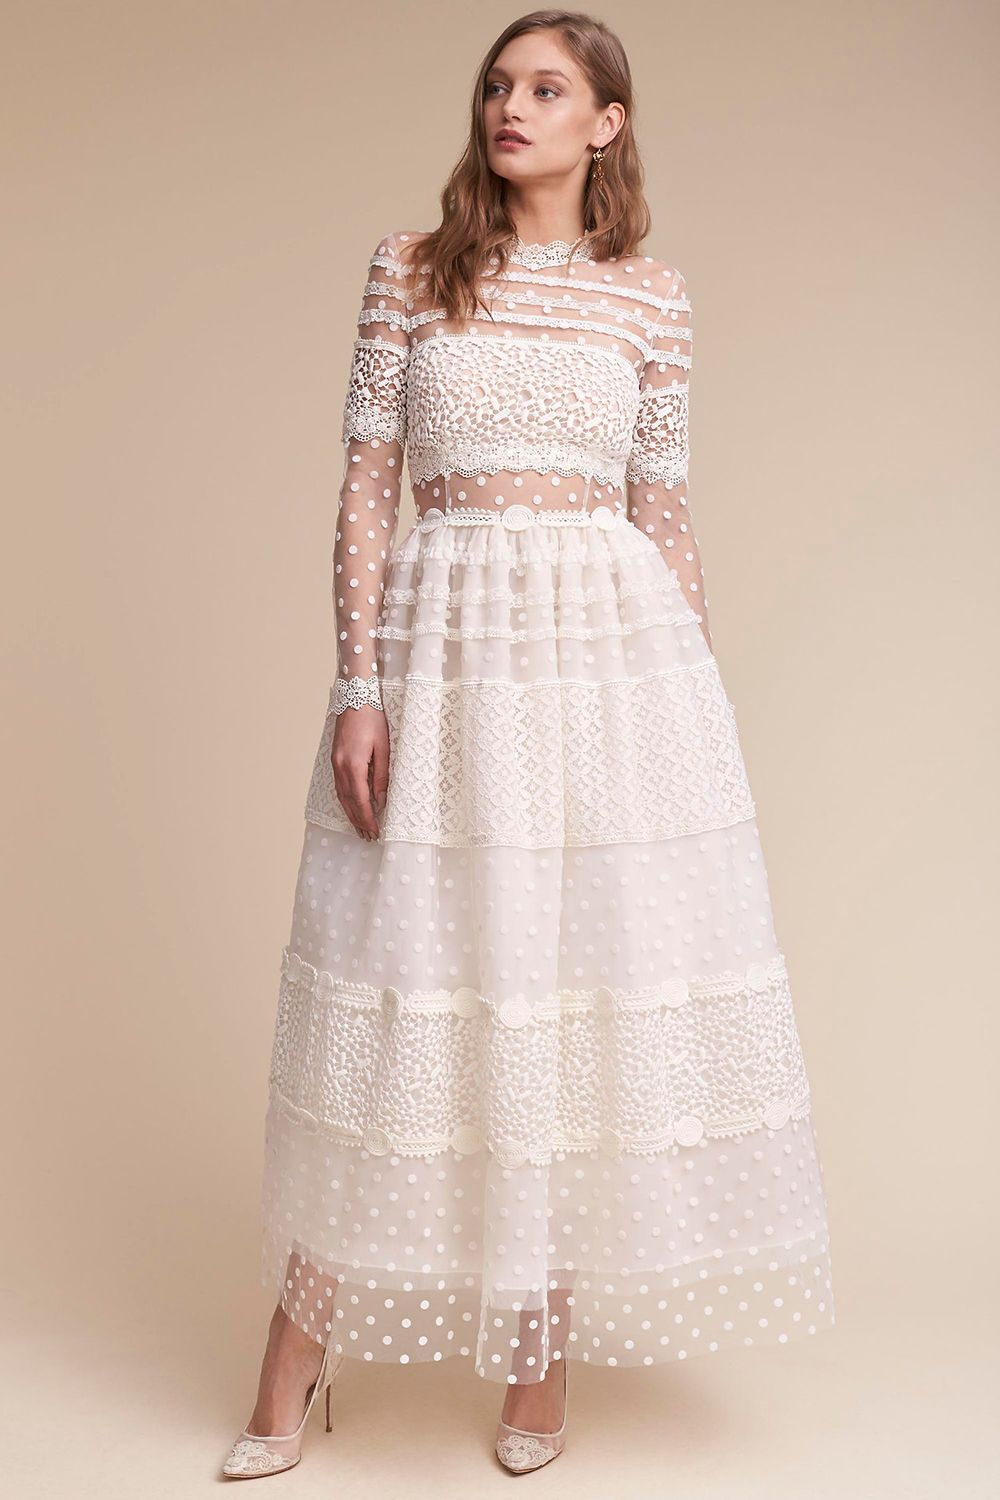 "<p>This Swiss-dot meringue pouf&nbsp&#x3B;of a dress is also called the&nbsp&#x3B;""Keaton."" So you have to get it.</p><p>$3,600, <a href=""http://www.bhldn.com/shop-the-bride-wedding-dresses/keaton-gown/productOptionIDS/fbcaeb8b-b90b-4e9a-9313-32da085940dd"" target=""_blank"" data-tracking-id=""recirc-text-link"">bhldn.com</a>.</p>"